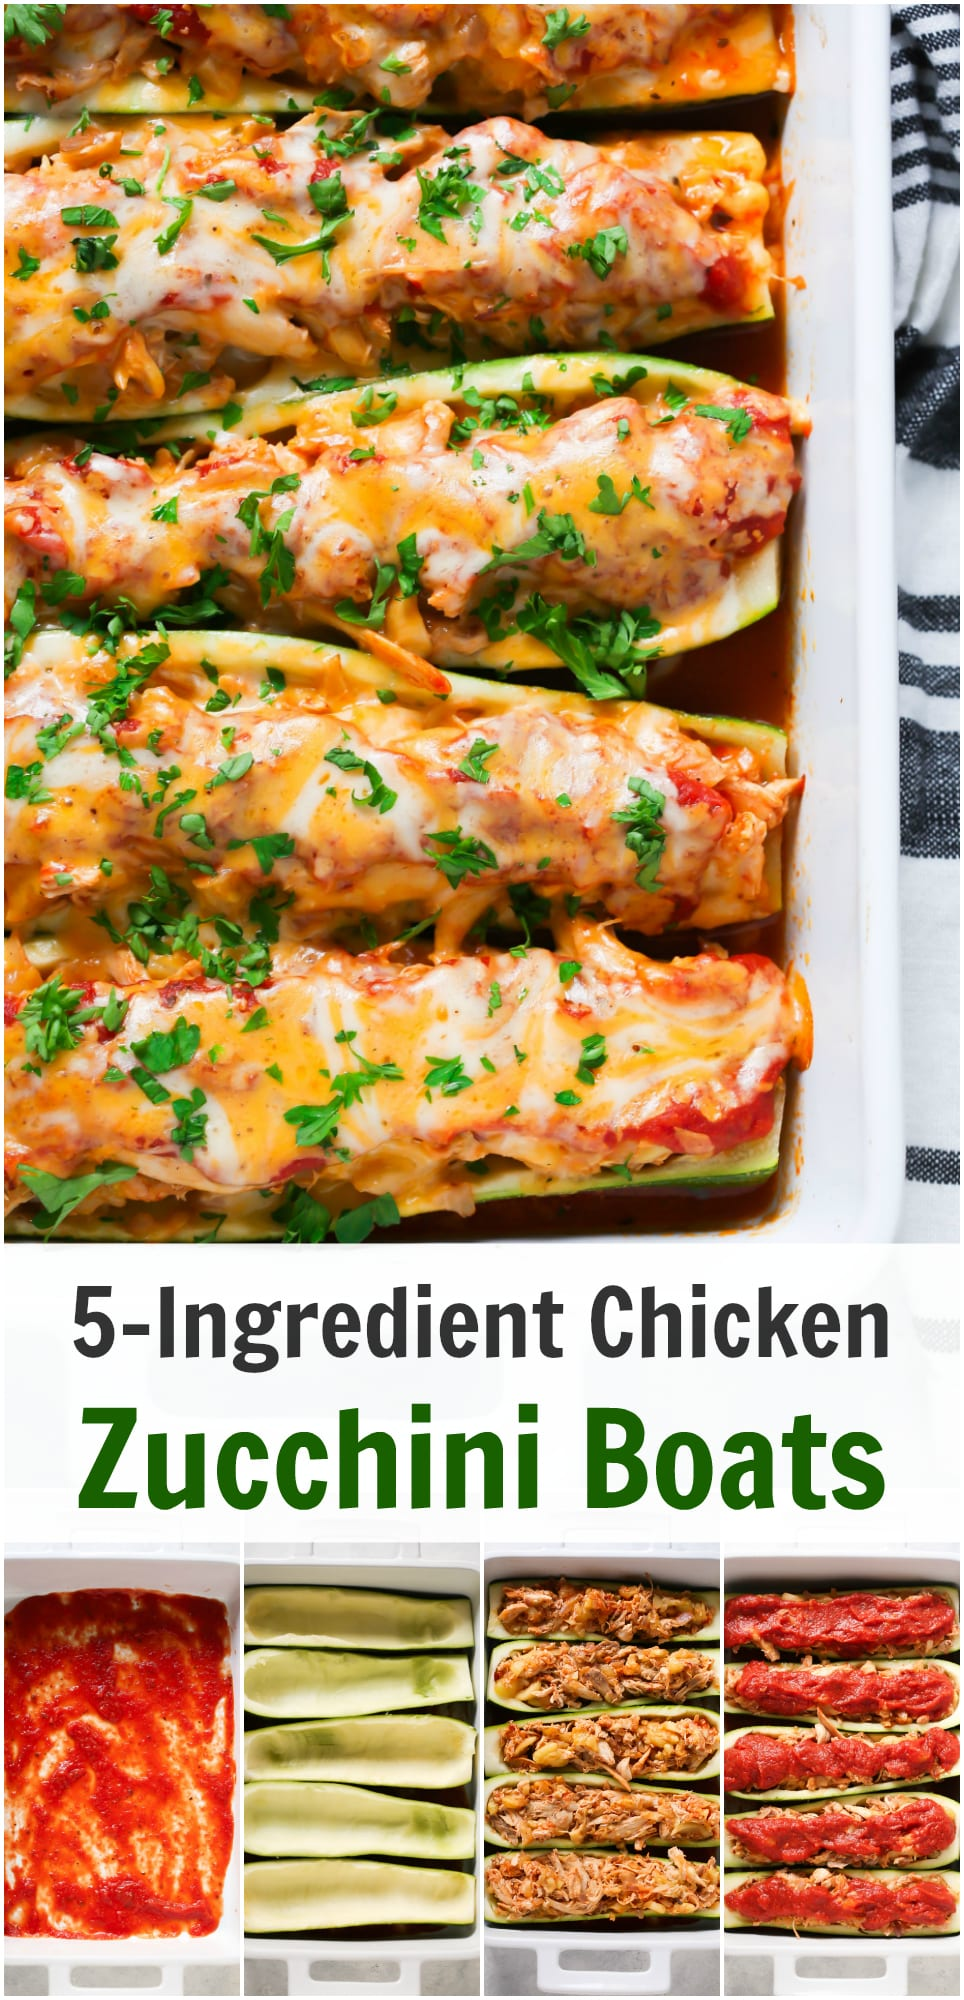 Try this low-carb and gluten-free 5-Ingredient Chicken Zucchini Boats that are stuffed with chicken, homemade tomato pasta sauce and mozzarella/cheddar cheese.